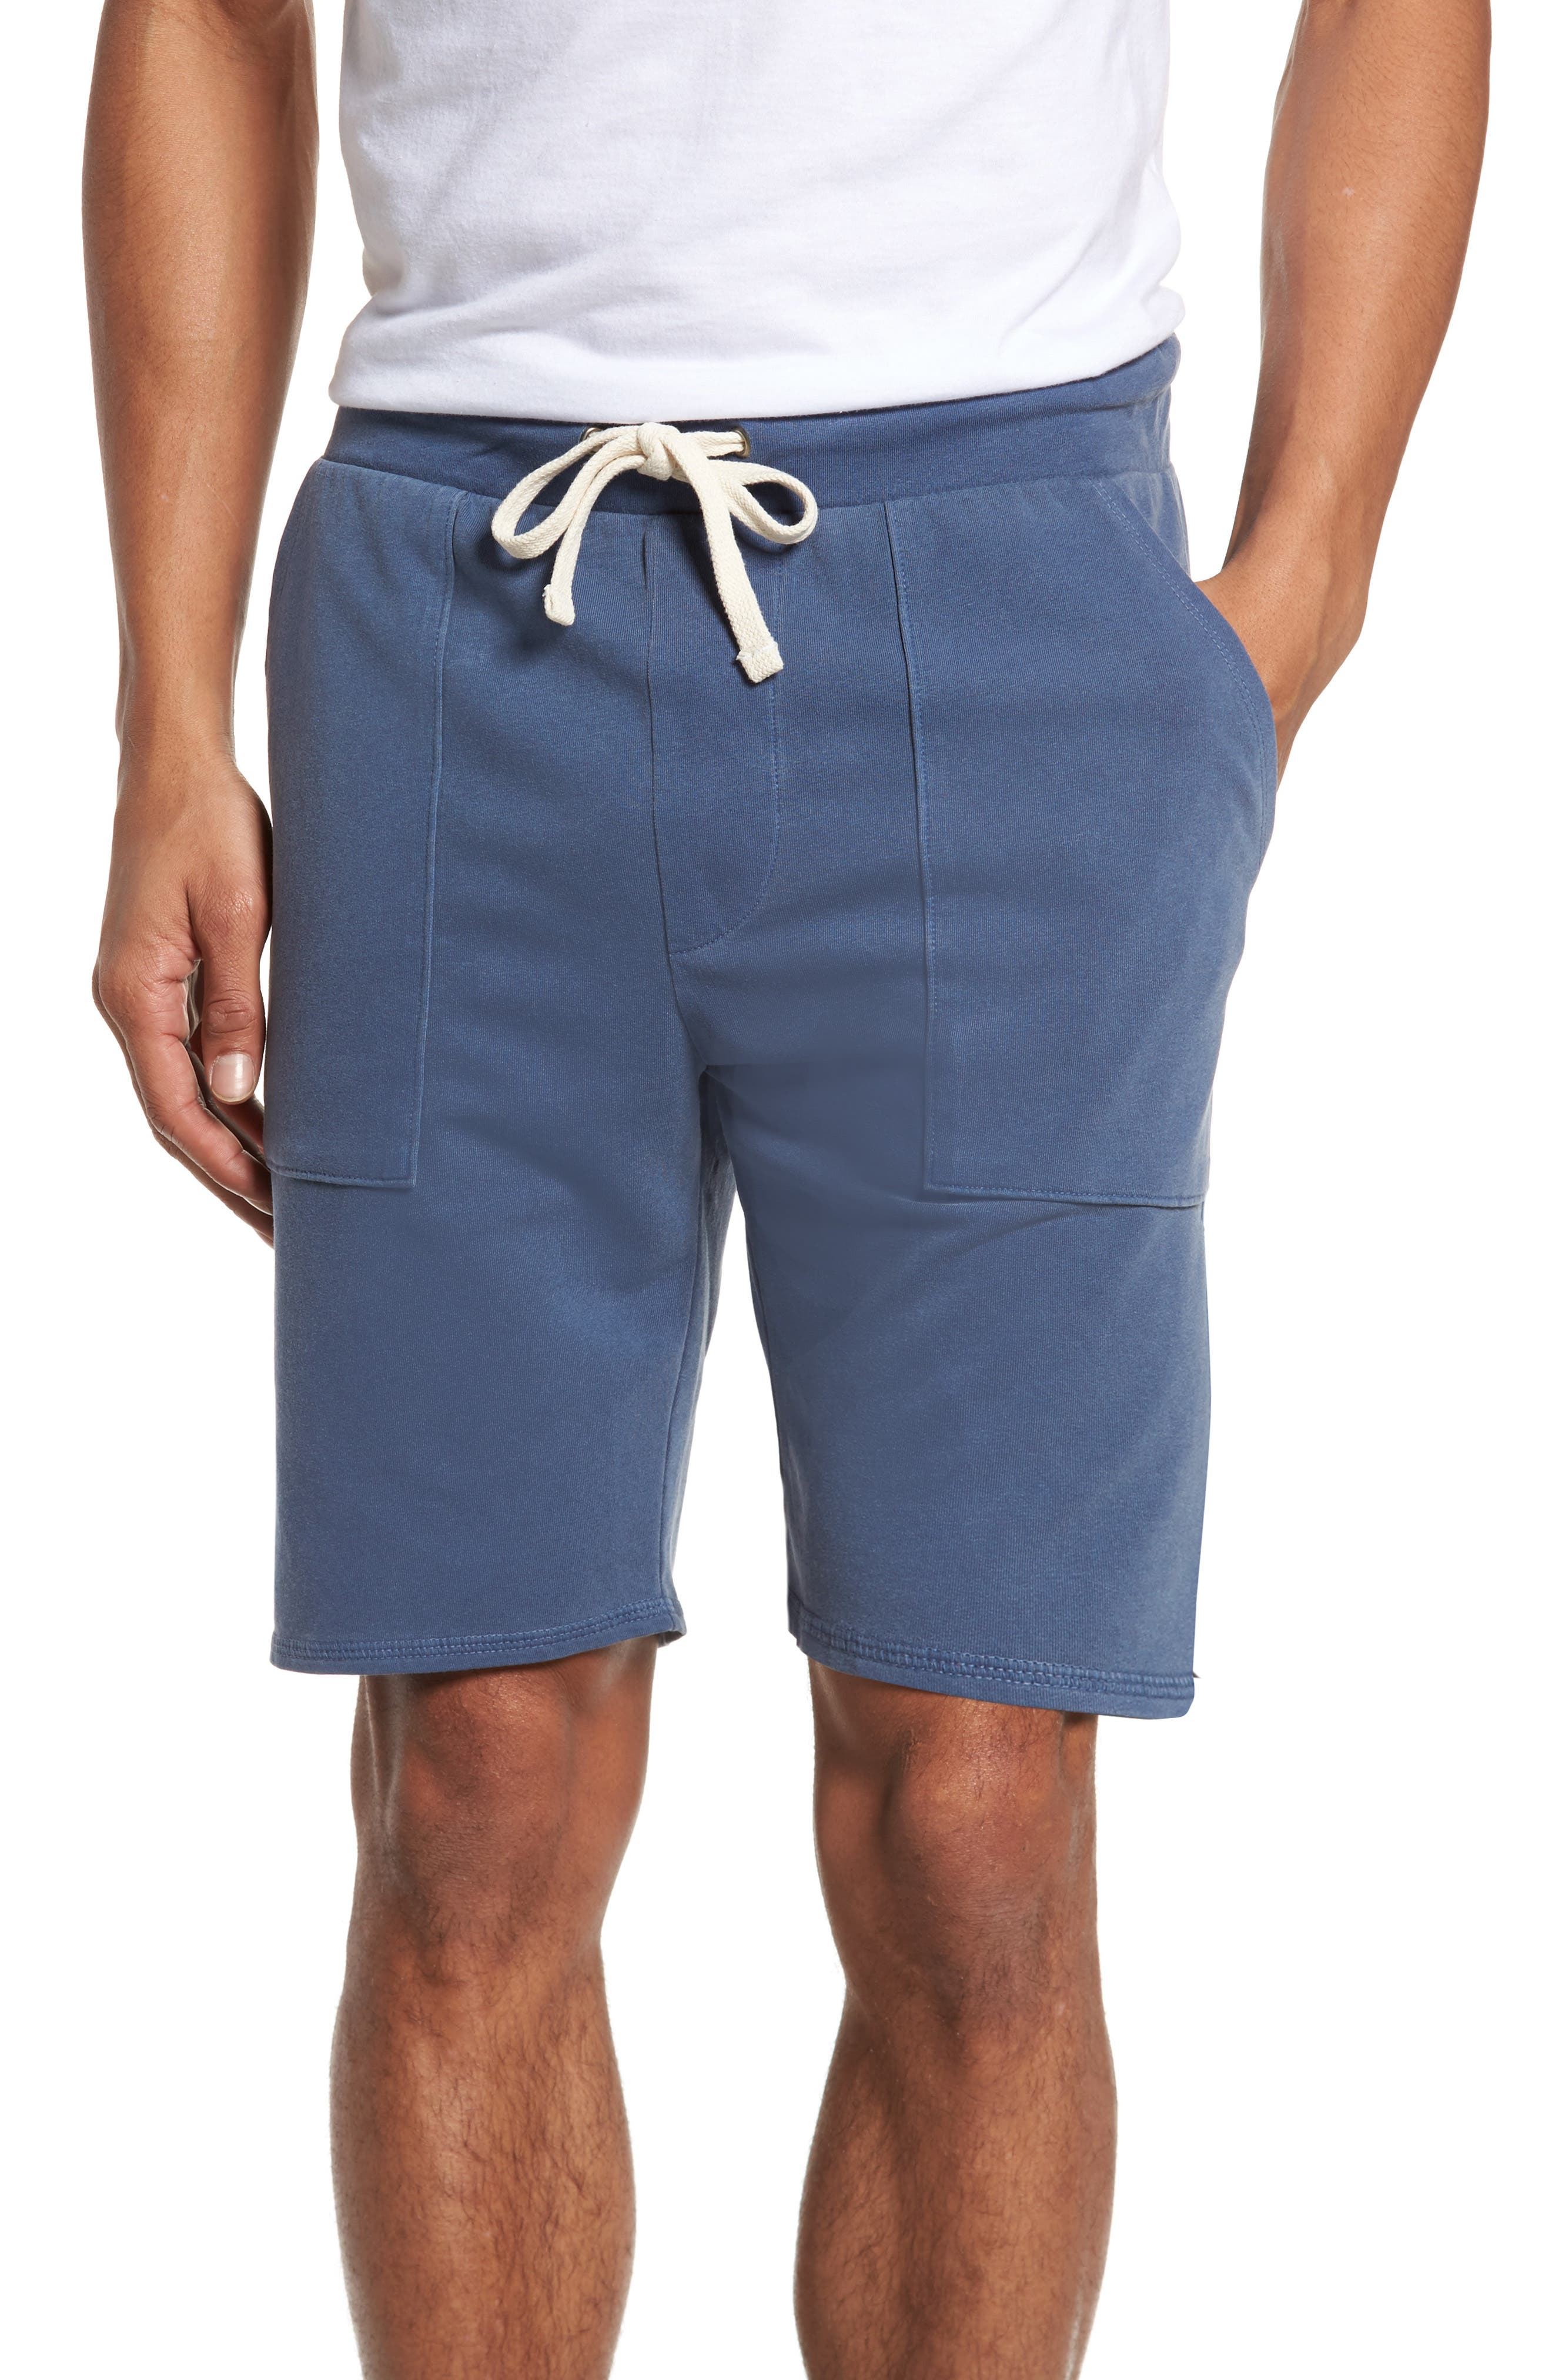 Terrycloth Scallop Shorts,                             Main thumbnail 1, color,                             Faded Navy